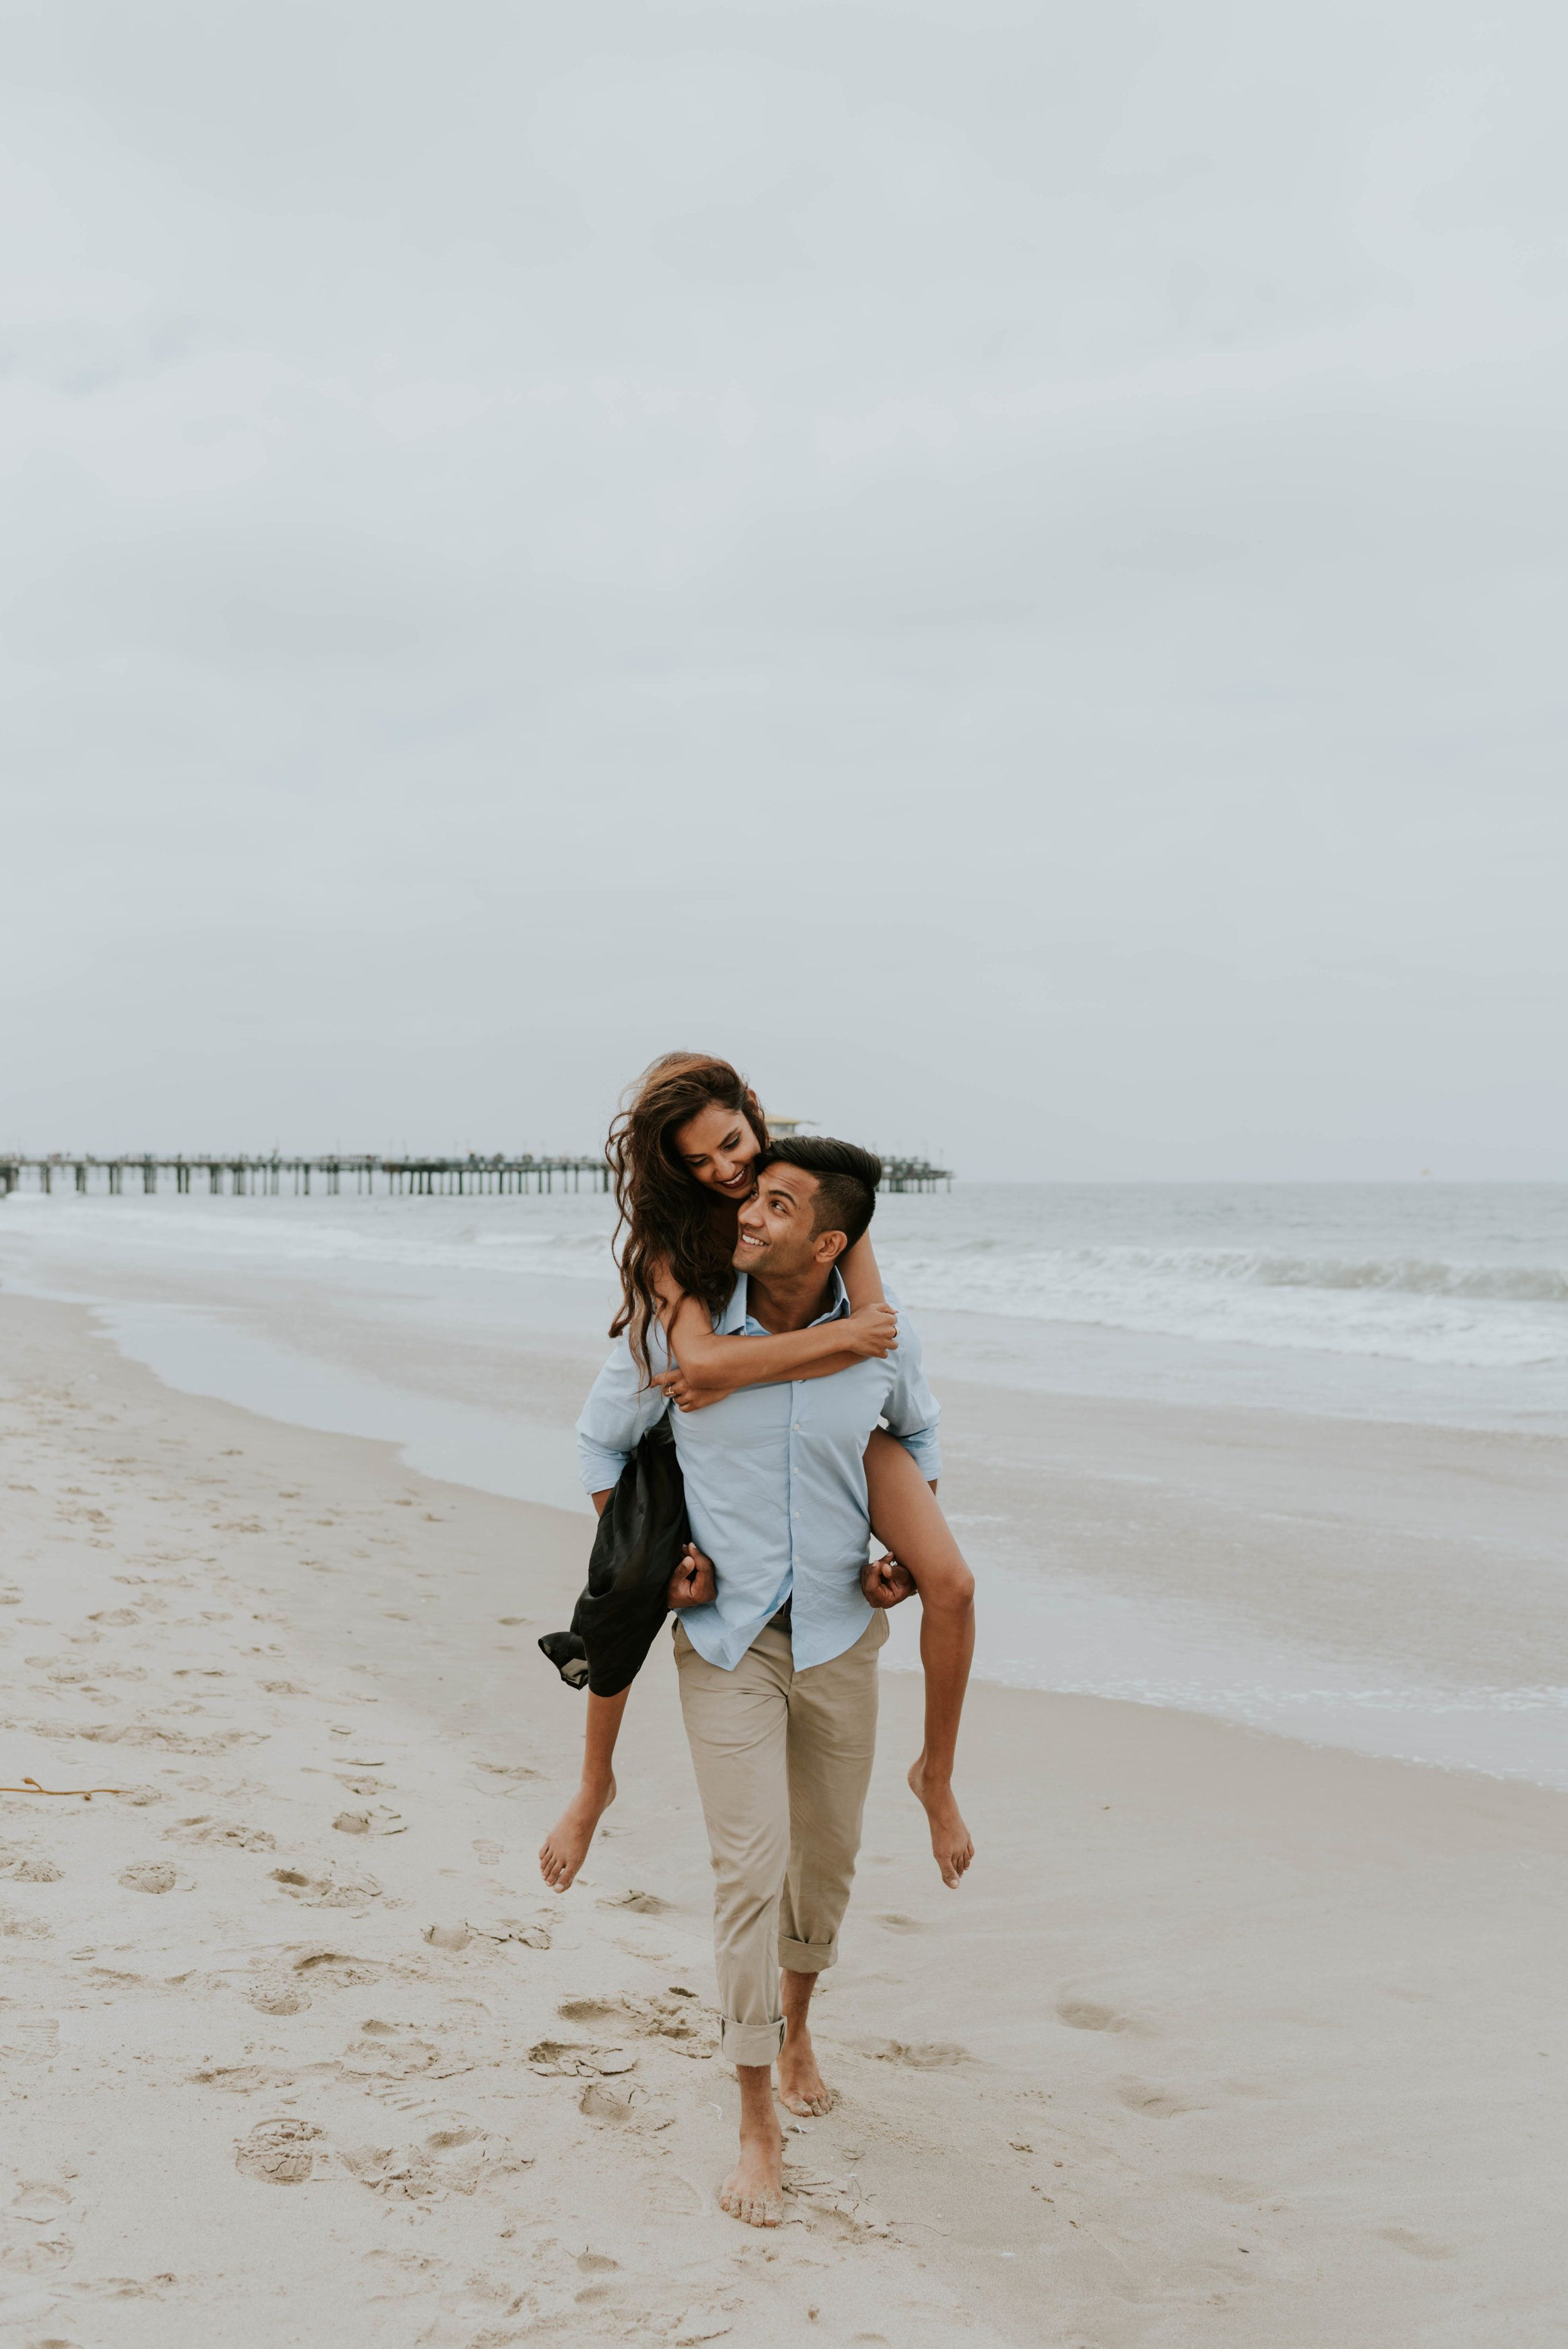 Neha + Amit – Santa Monica Beach Couples Shoot